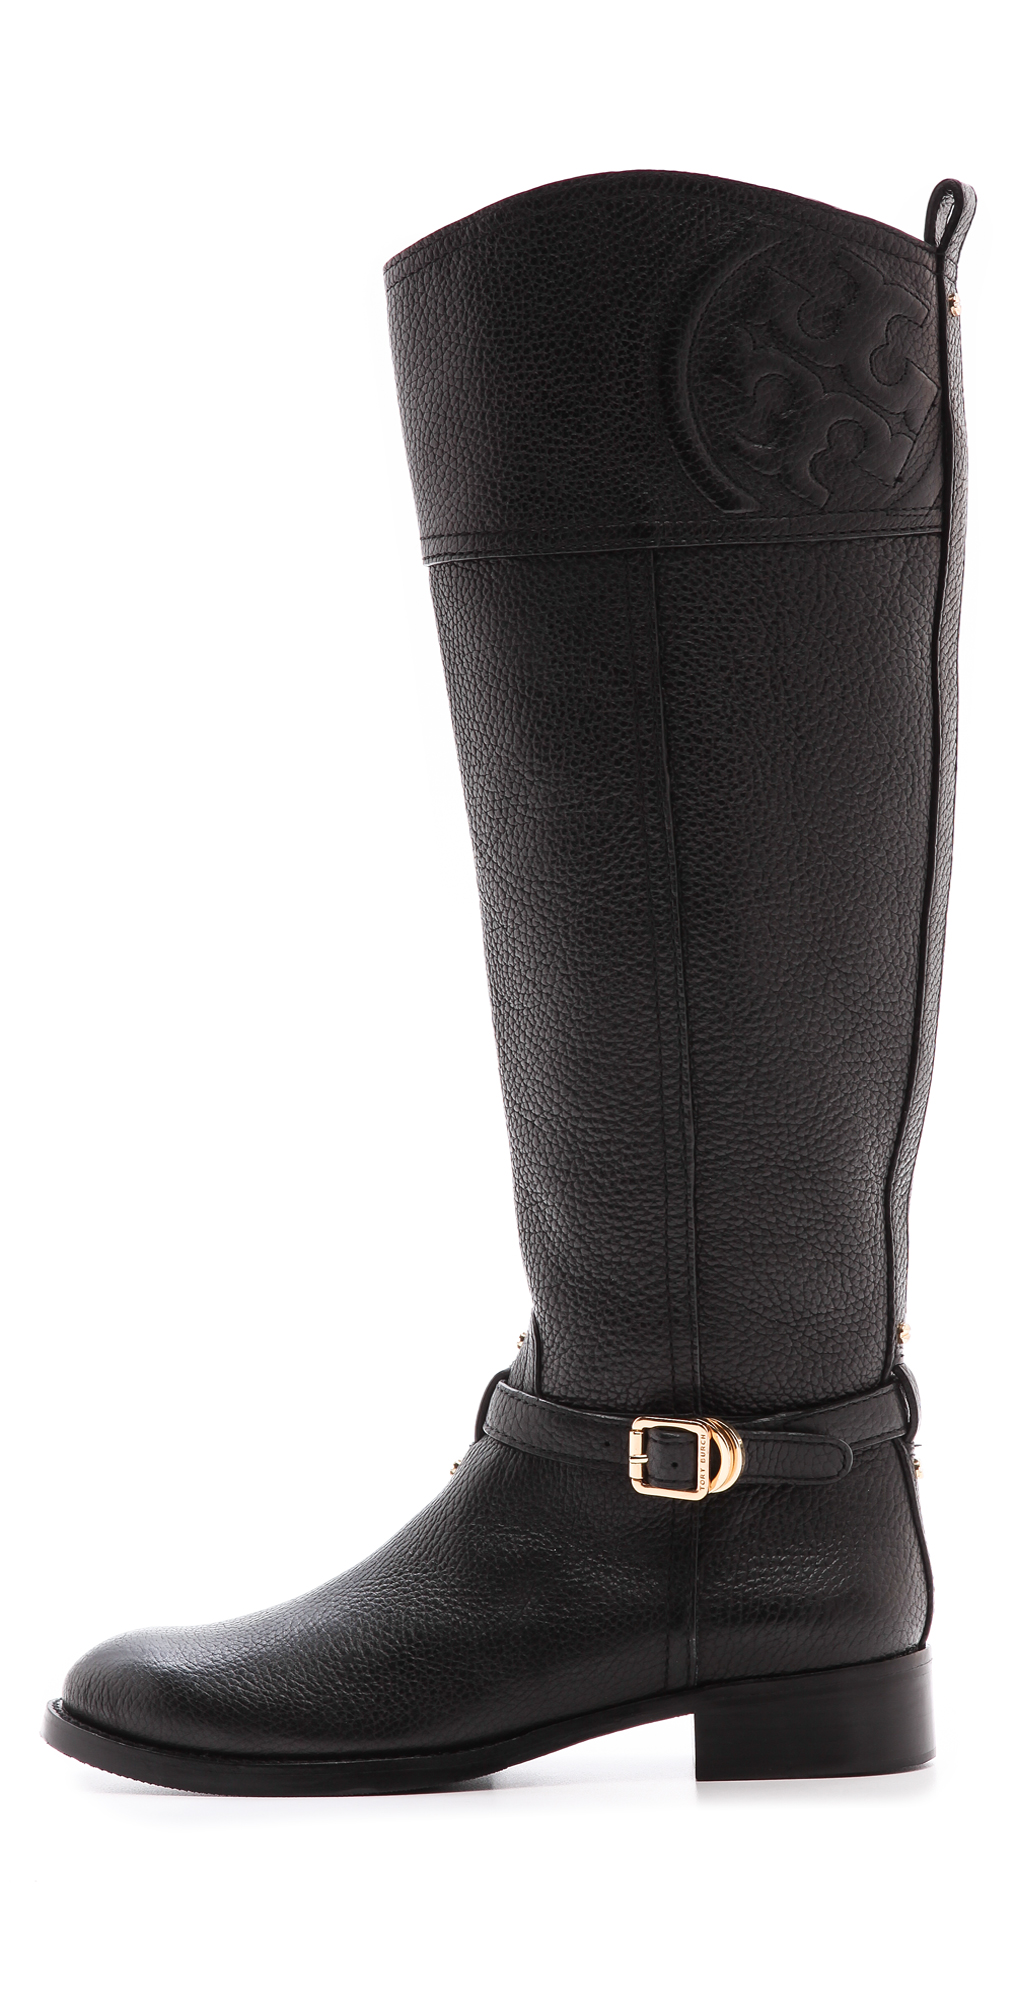 7155ce4354cf Tory Burch Marlene Riding Boots